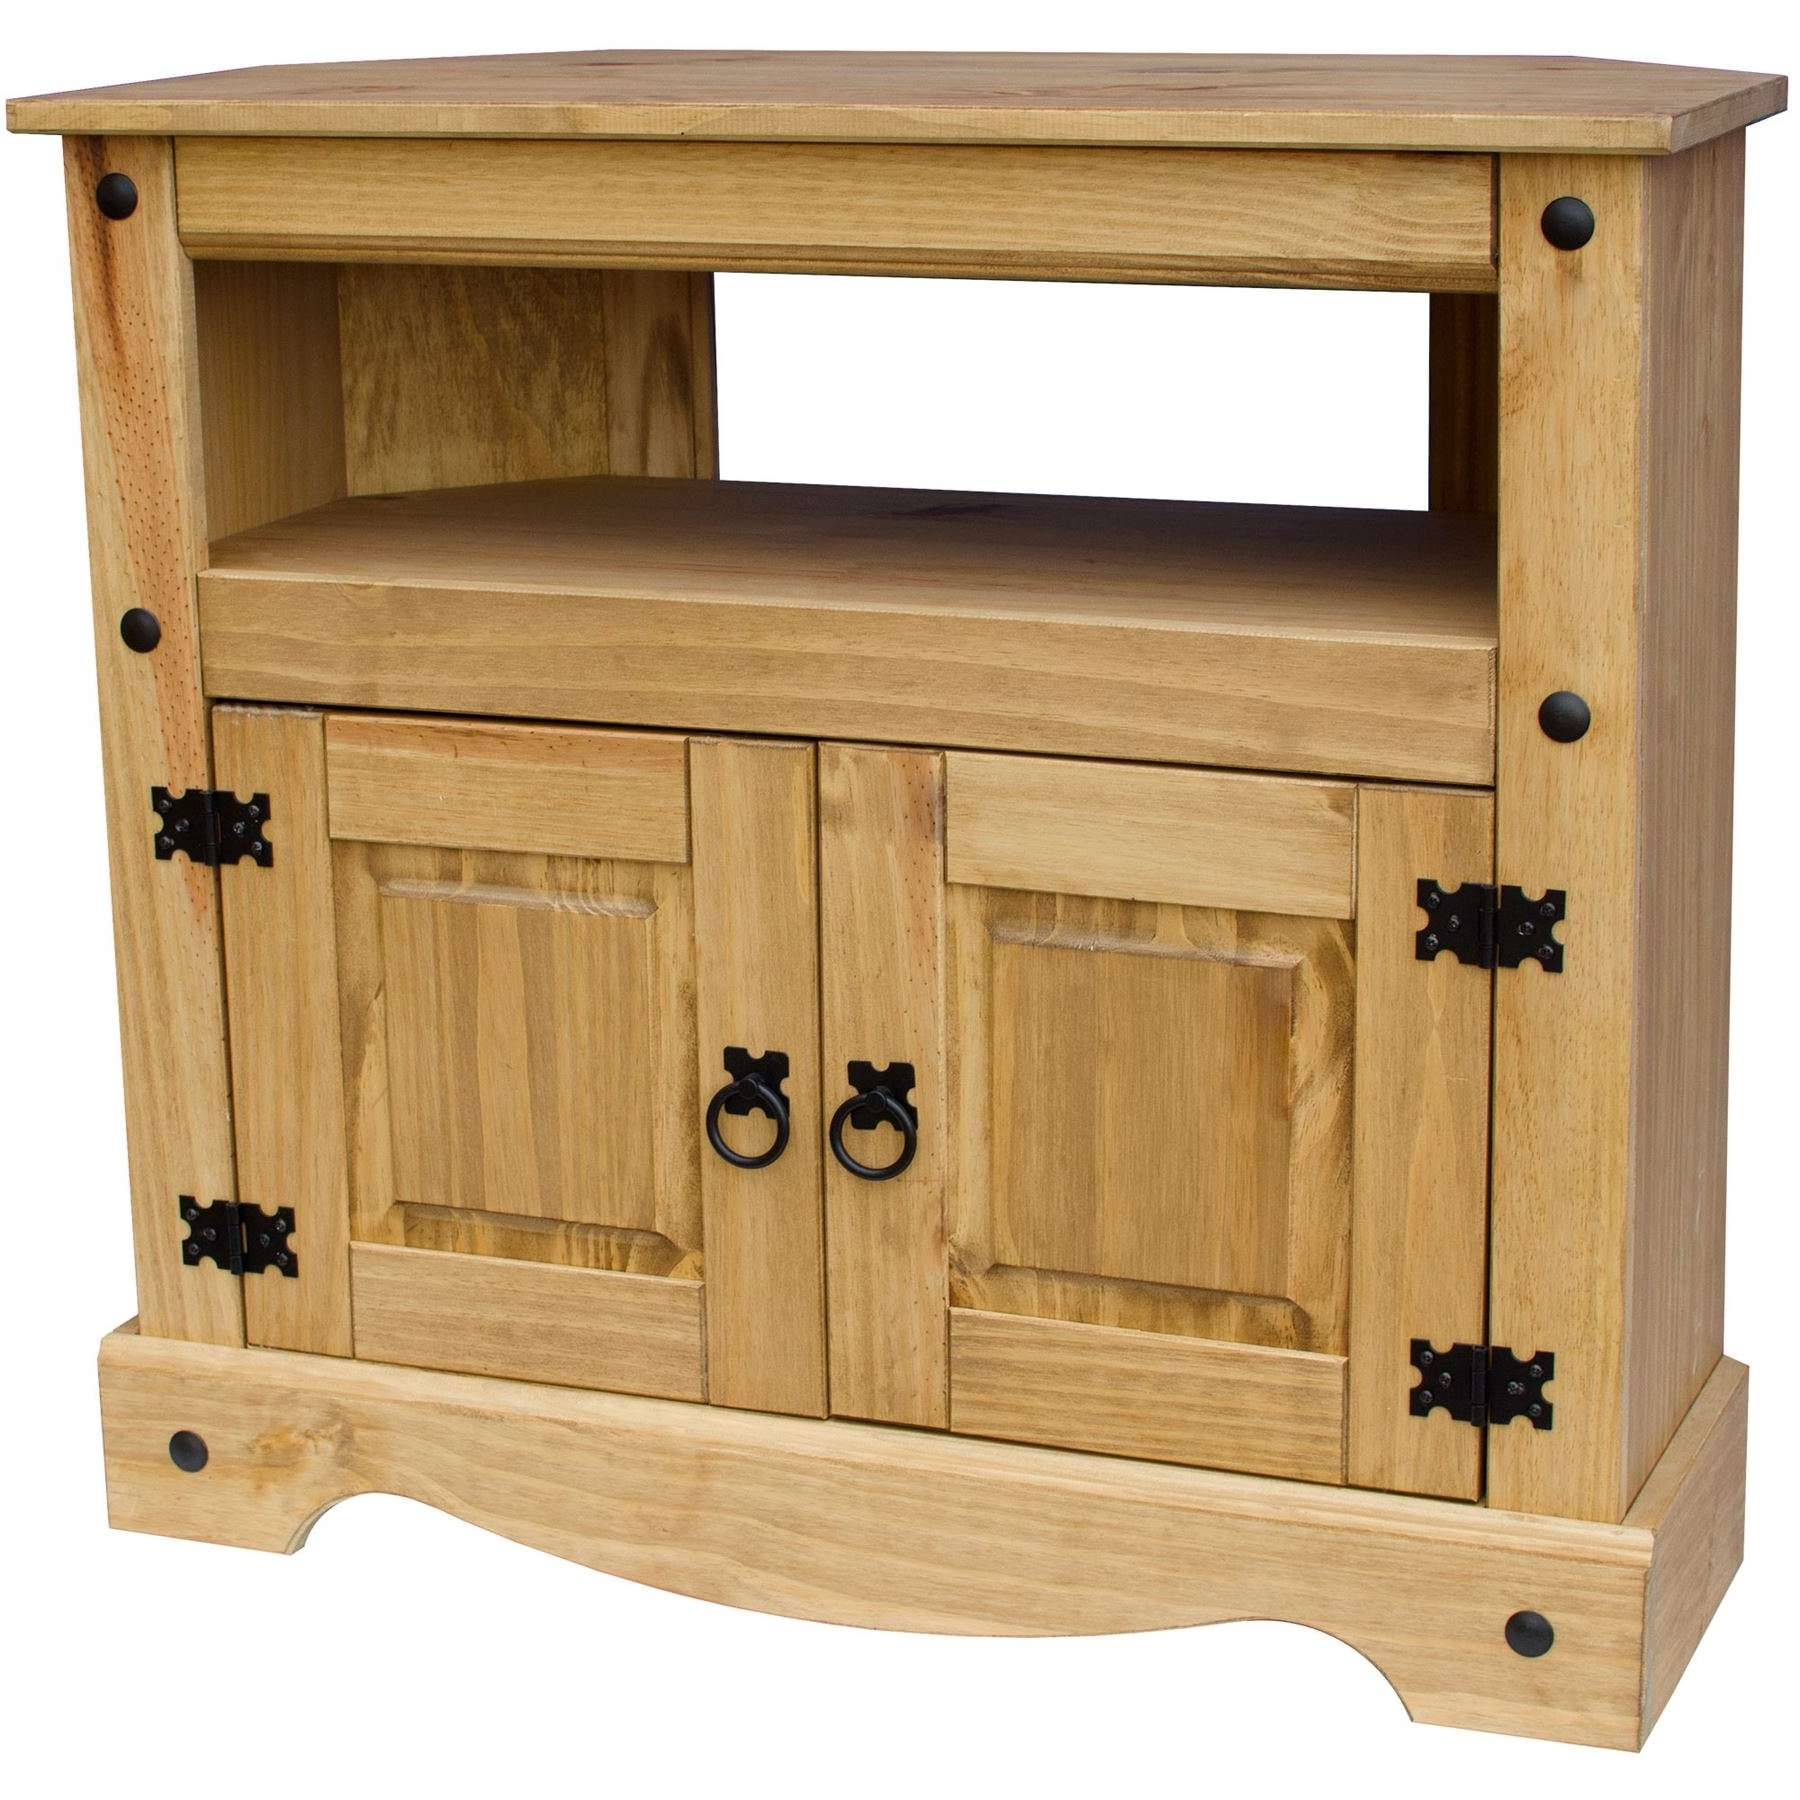 Corona Panama Tv Cabinet Media Dvd Unit Solid Pine Wood Mexican With Regard To Rustic Pine Tv Cabinets (View 5 of 20)